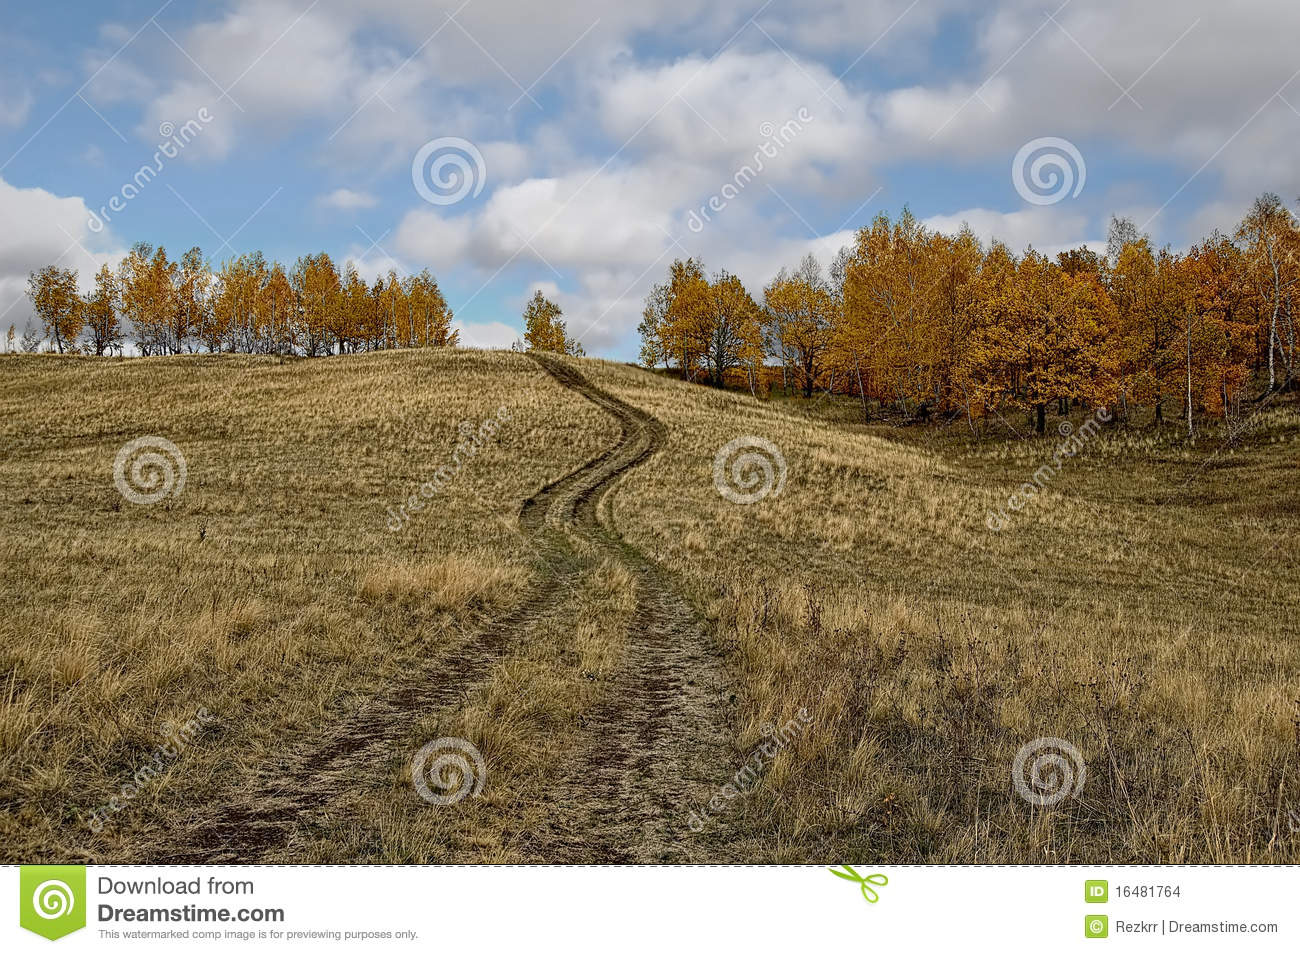 Dirt Road The Trail Vehicle In A Yellow Brown Hills The Trees With